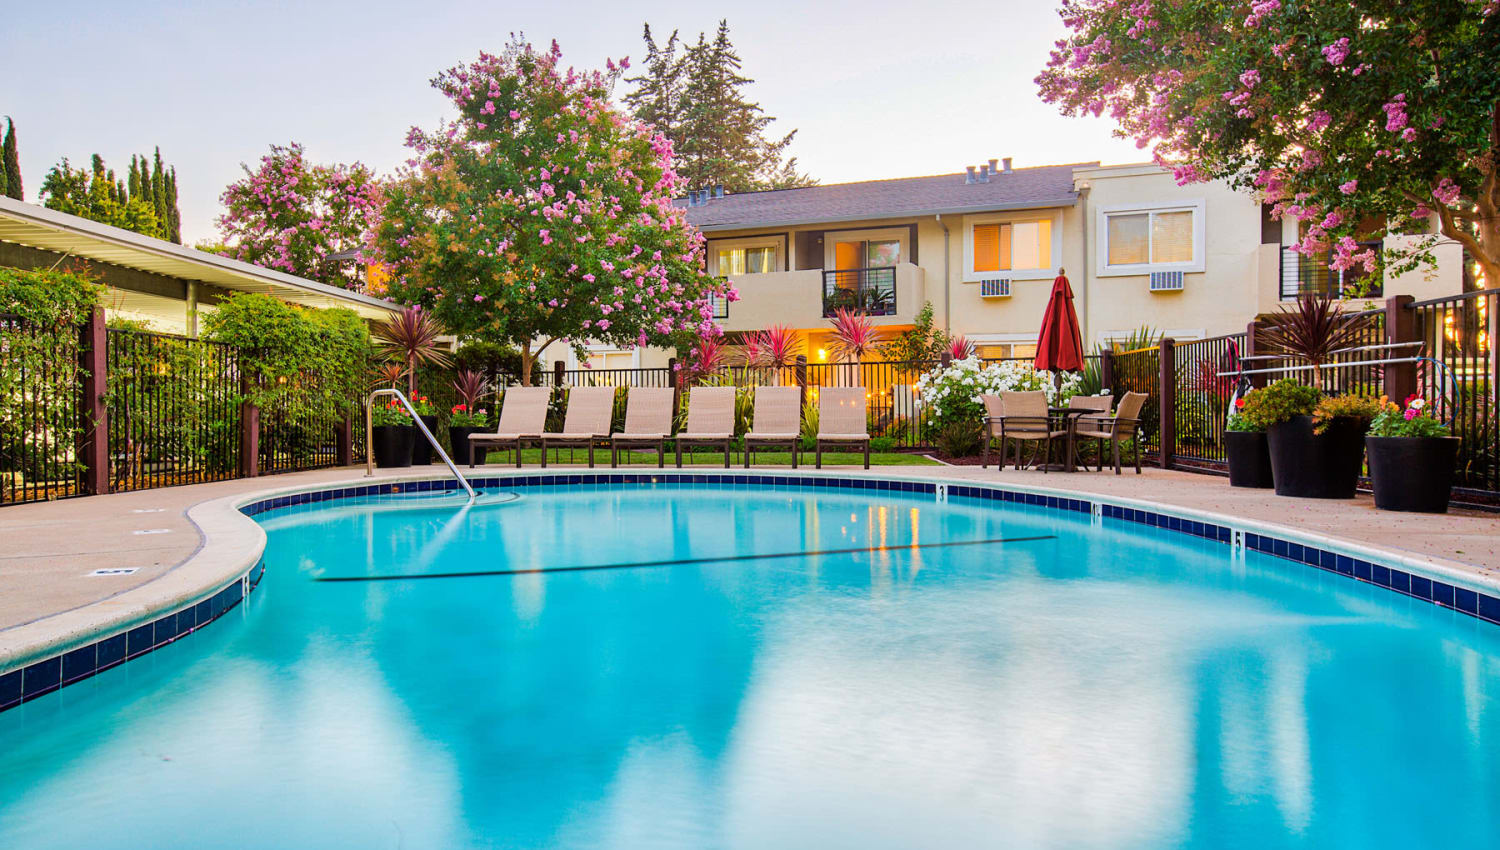 Swimming pool area on a peaceful morning at Pleasanton Place Apartment Homes in Pleasanton, California